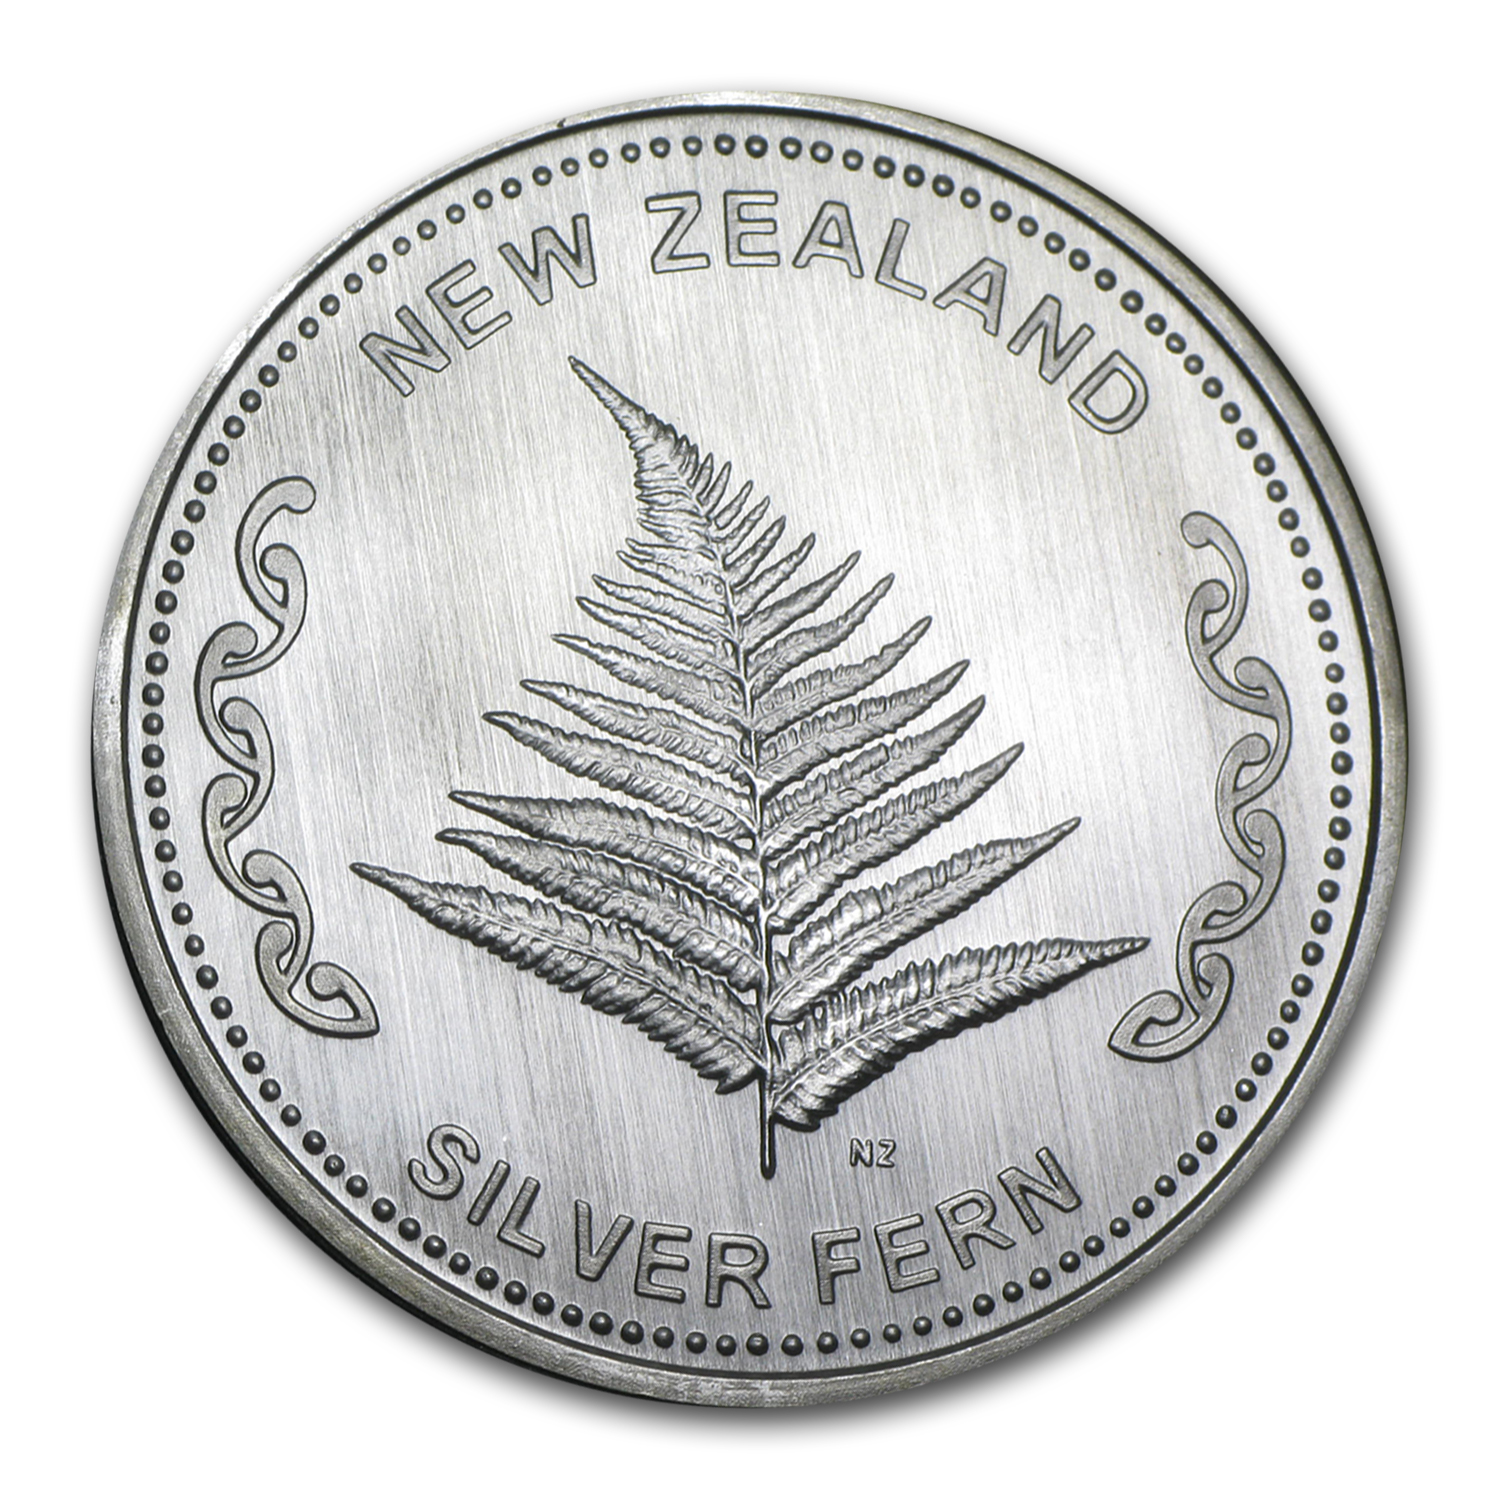 1 oz Silver Round - New Zealand Silver Fern